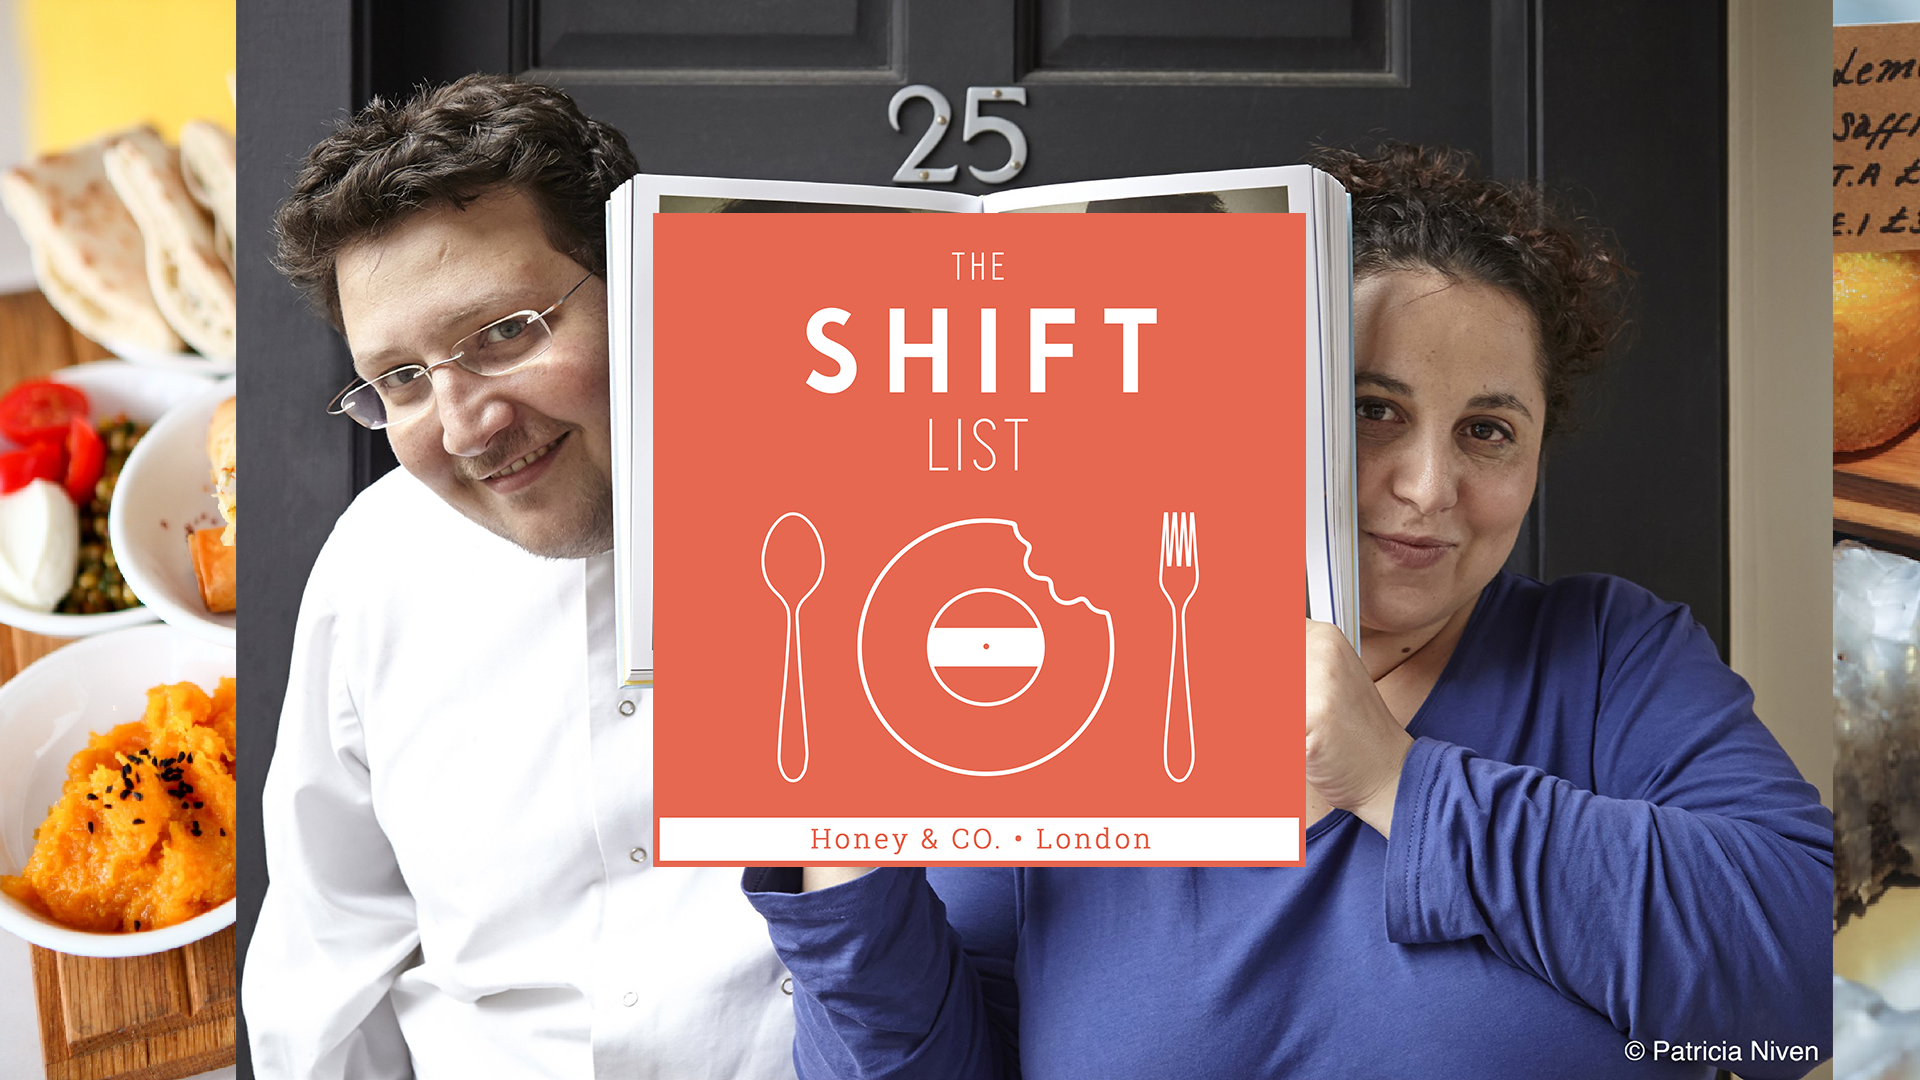 The Shift List - Honey & Co Revisited